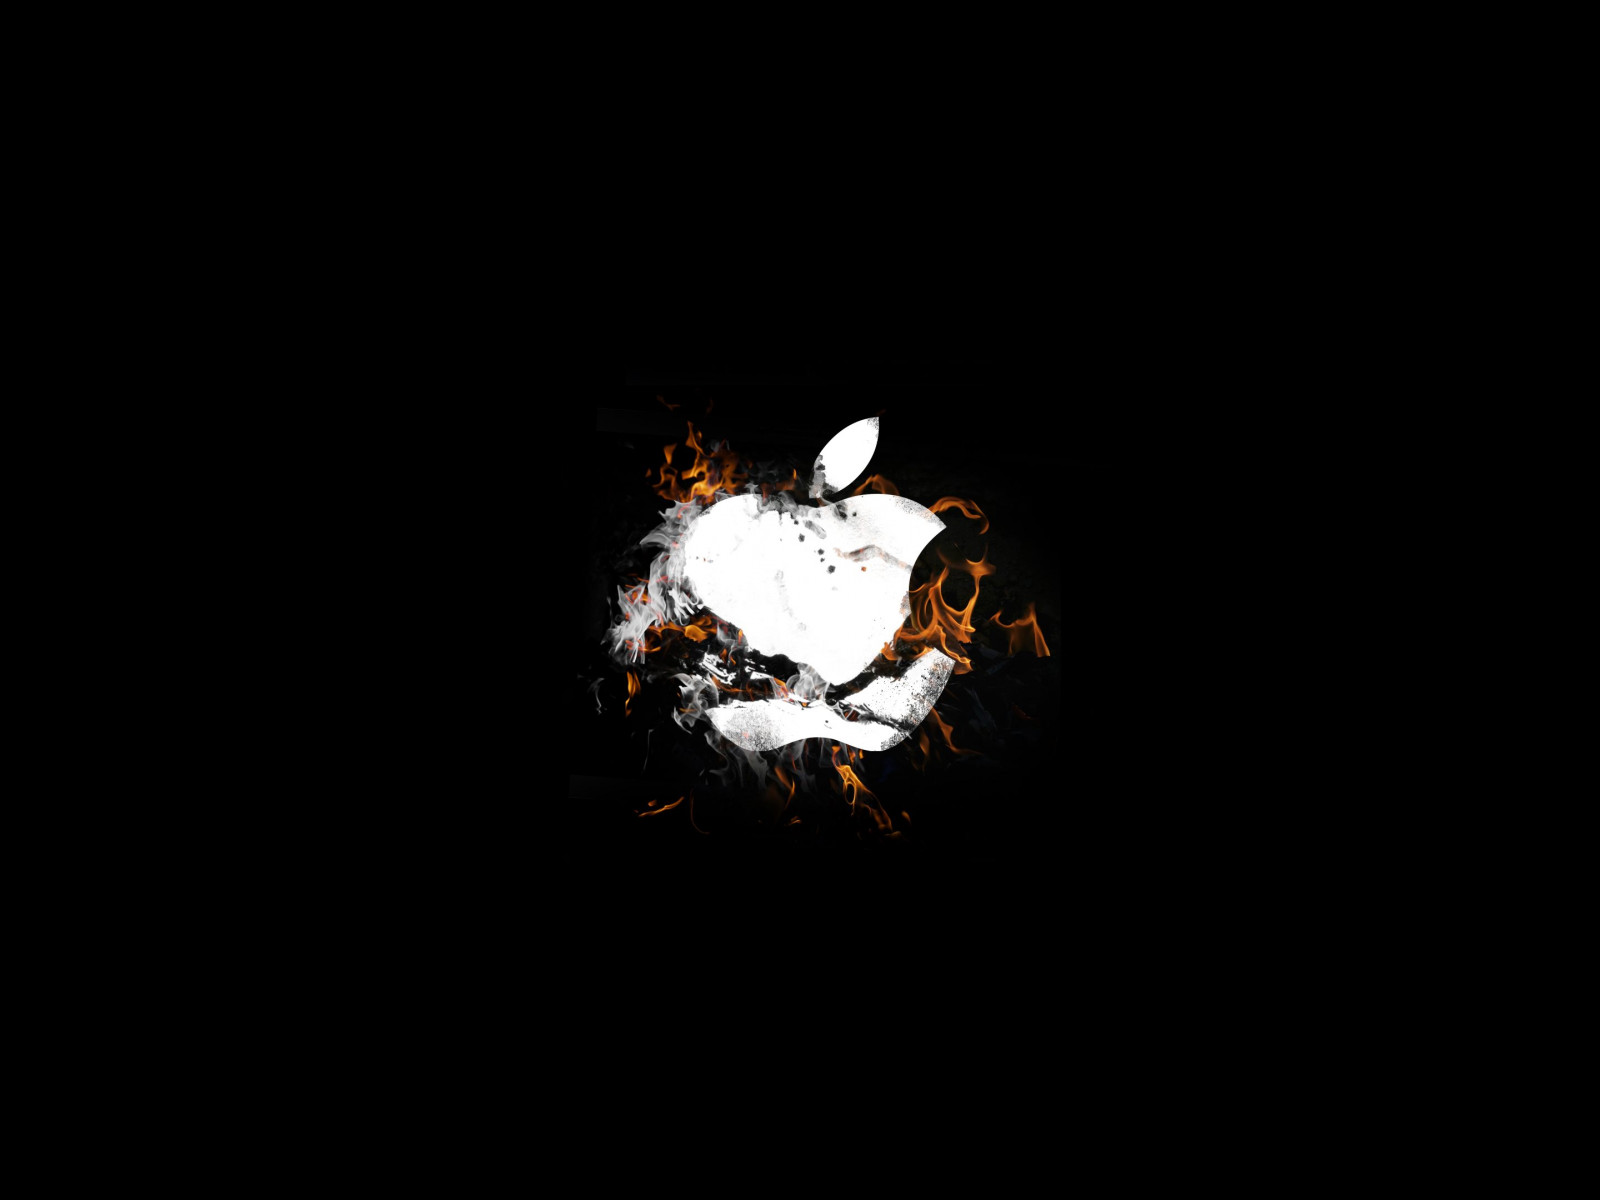 The Apple is on fire | 1600x1200 wallpaper